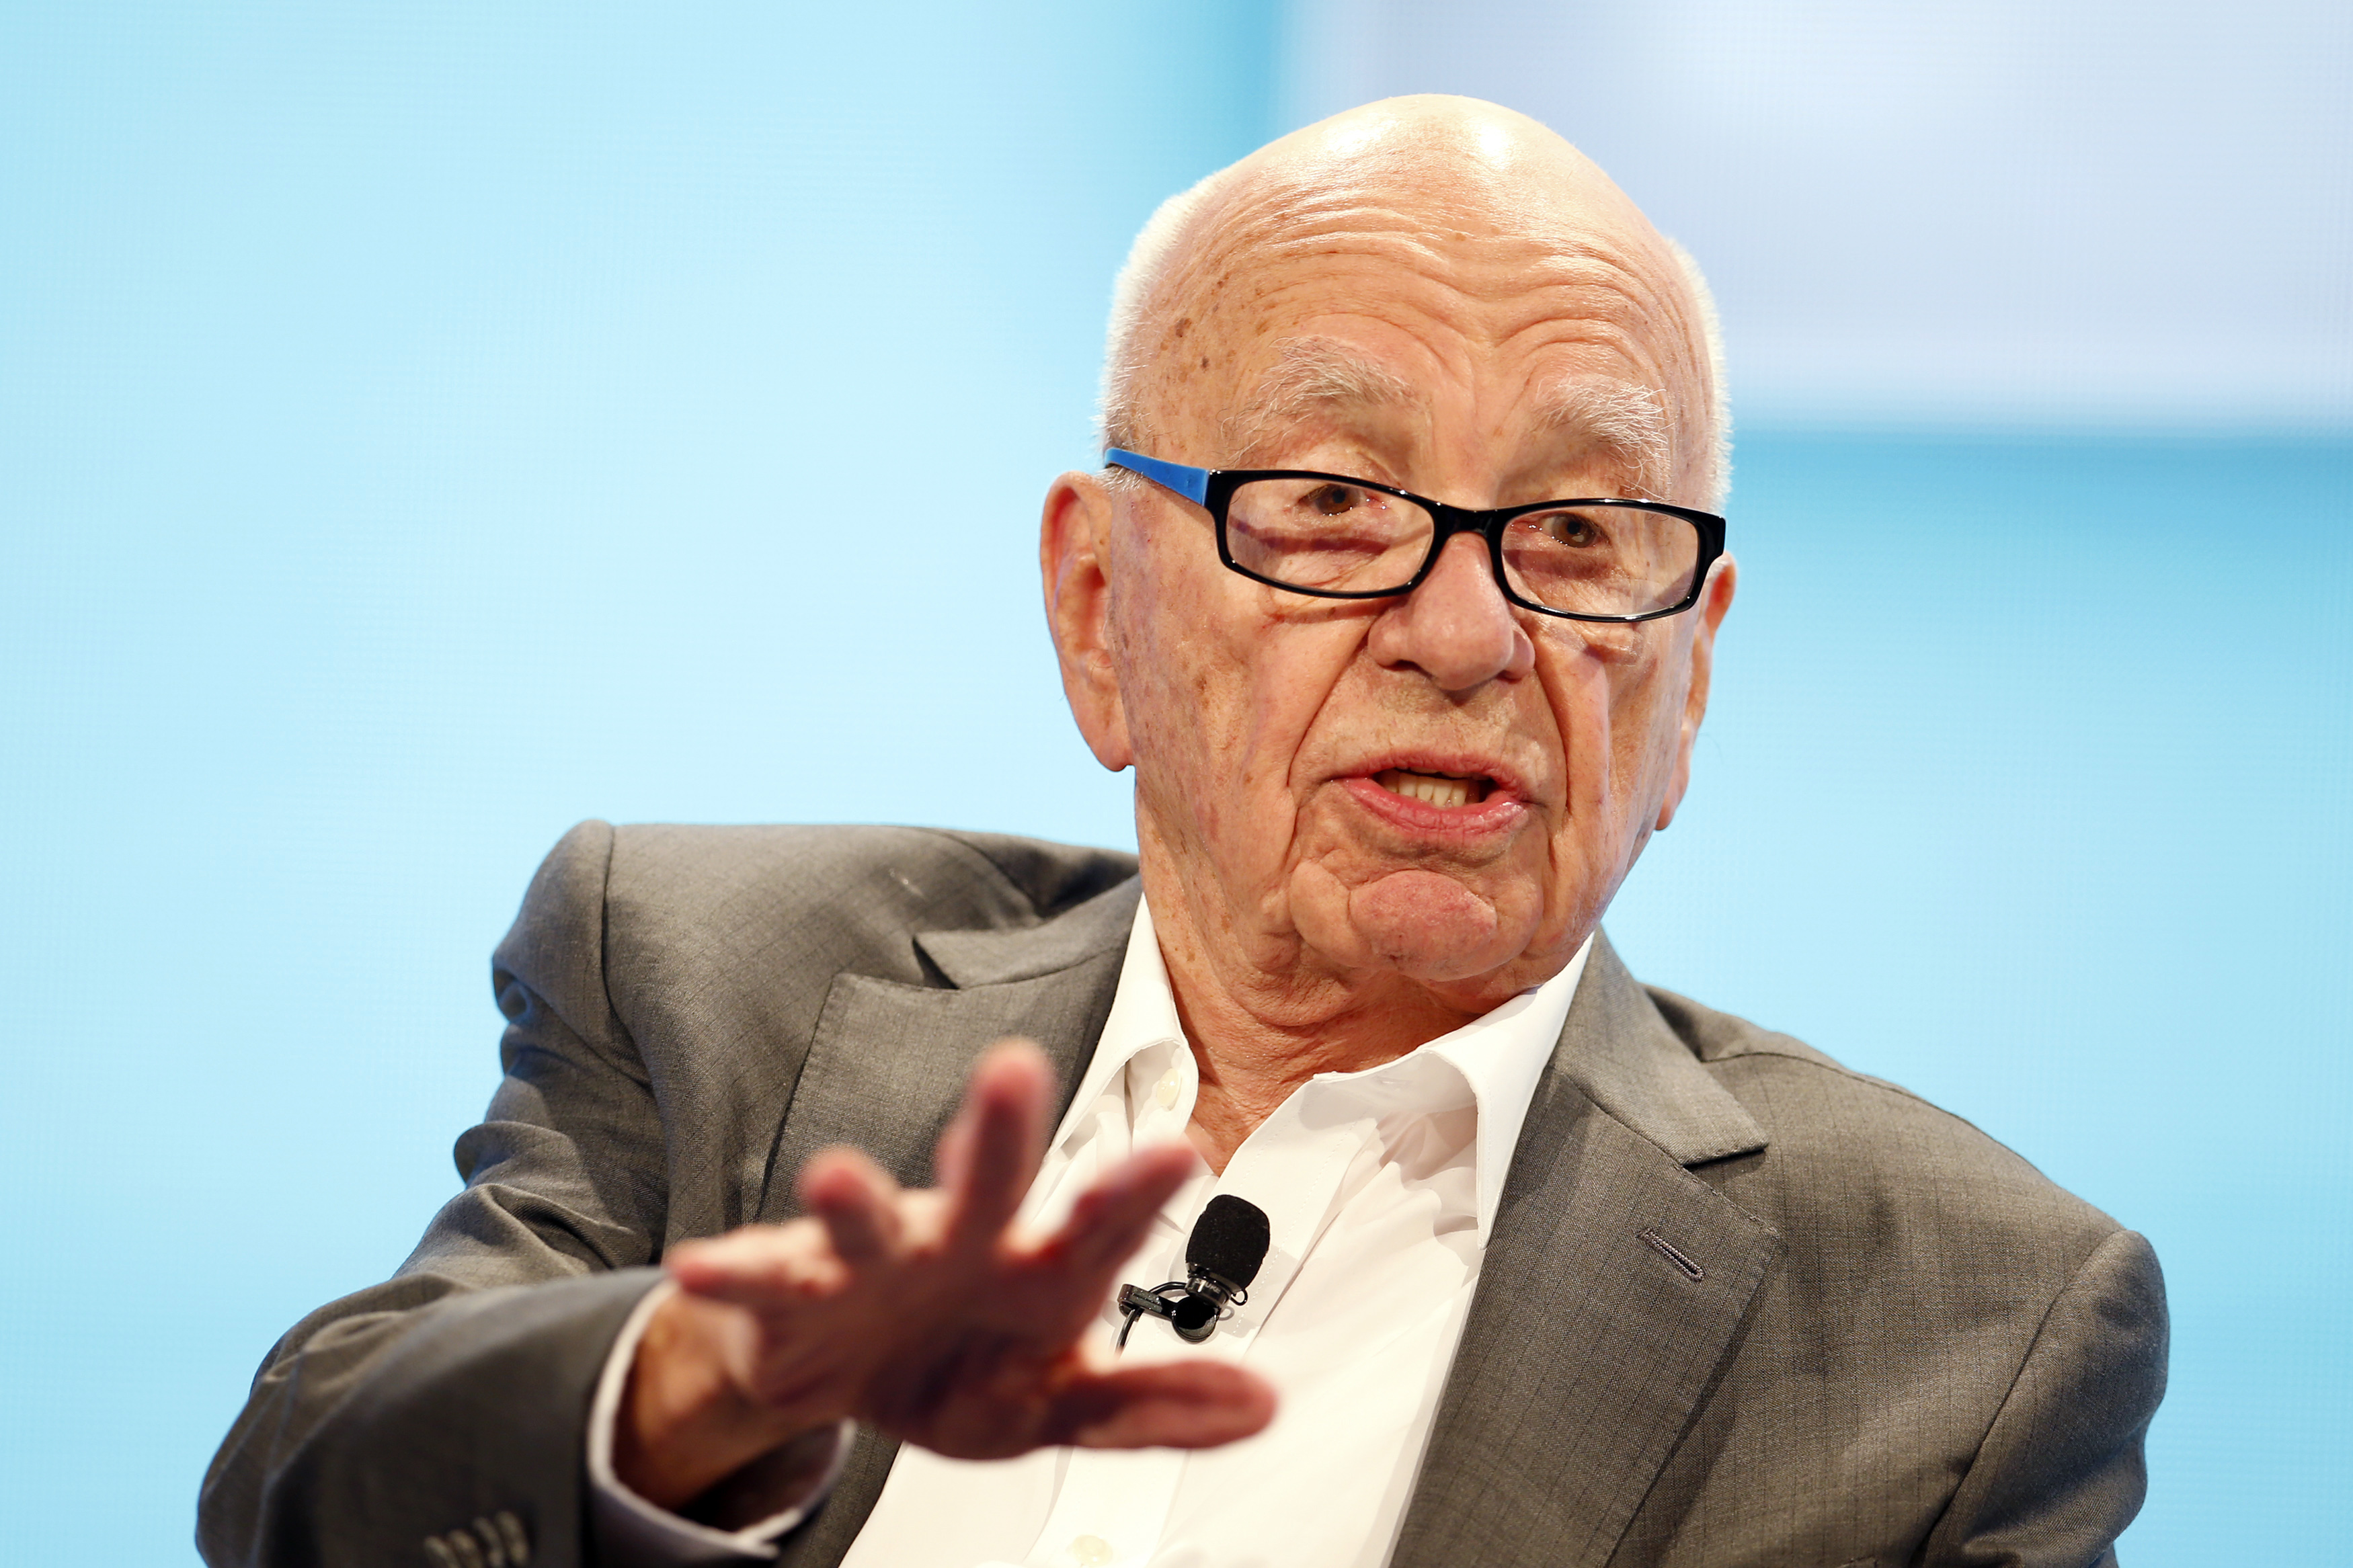 Rupert Murdoch, Executive Chairman News Corp and Chairman and CEO 21st Century Fox speaks at the WSJD Live conference in Laguna Beach, California October 29, 2014.